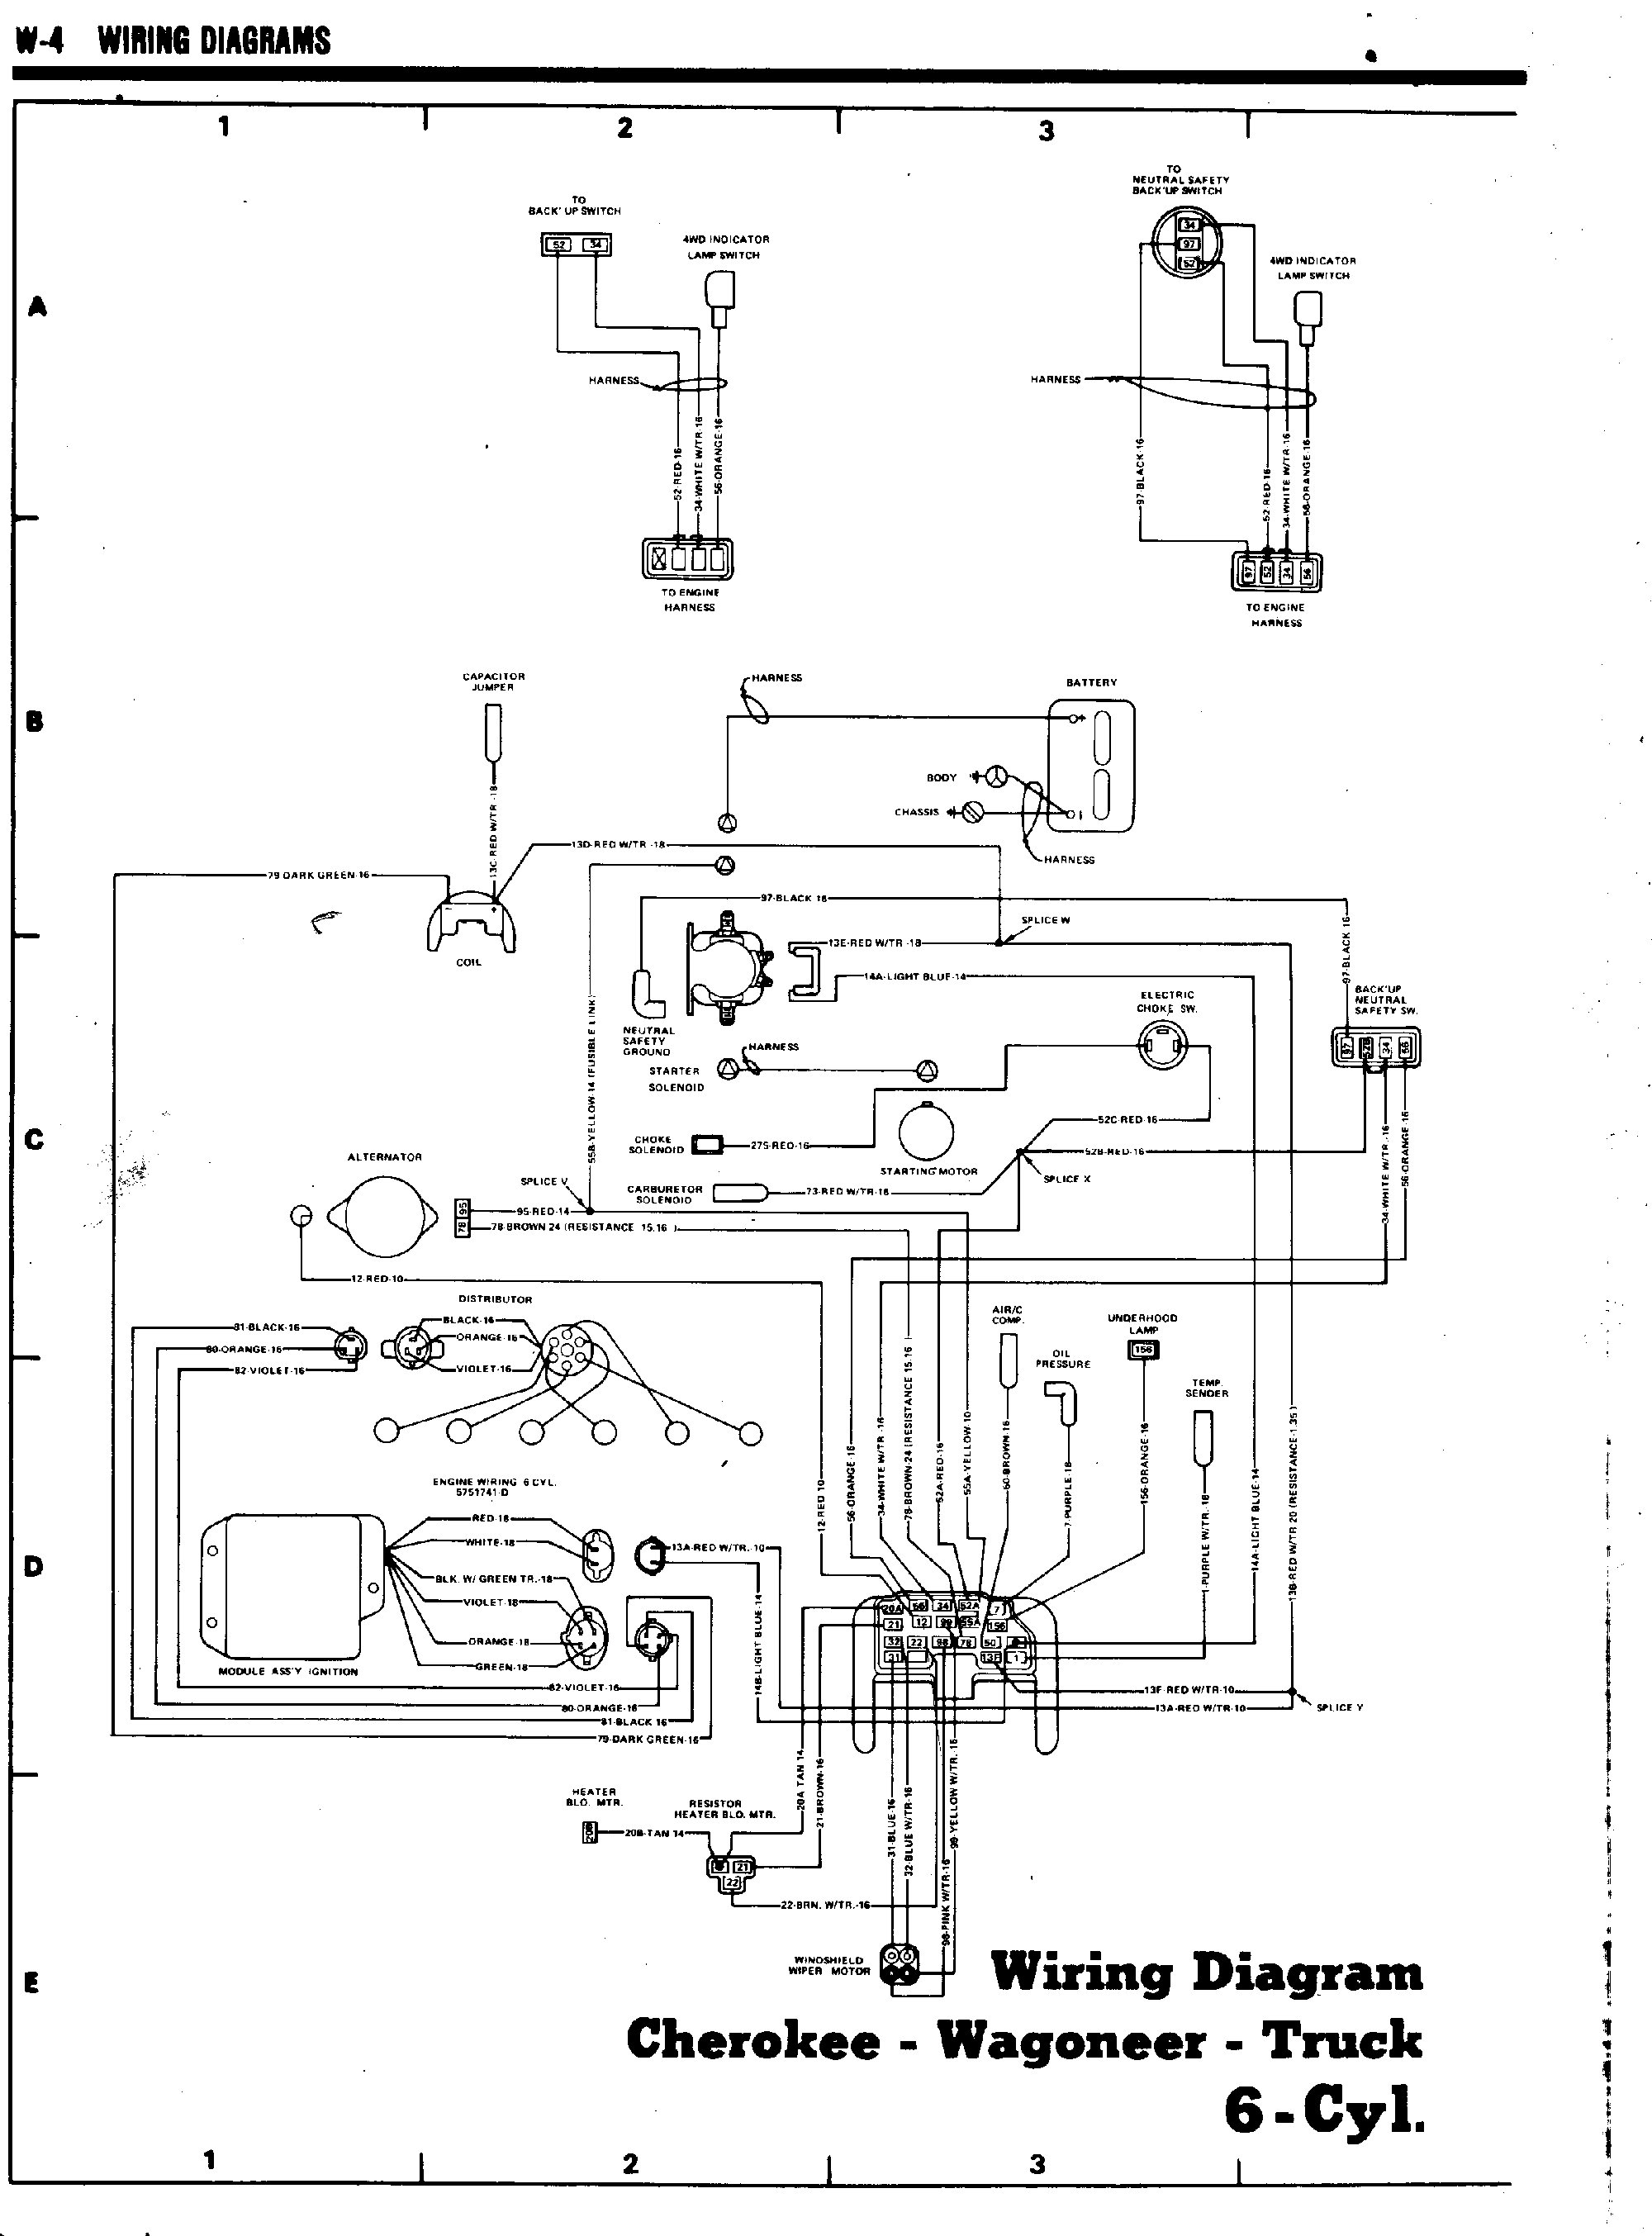 1980_cherokee_wagoneer_truck_6cyl_pg1 tom 'oljeep' collins fsj wiring page 1978 jeep wagoneer wiring diagram at n-0.co